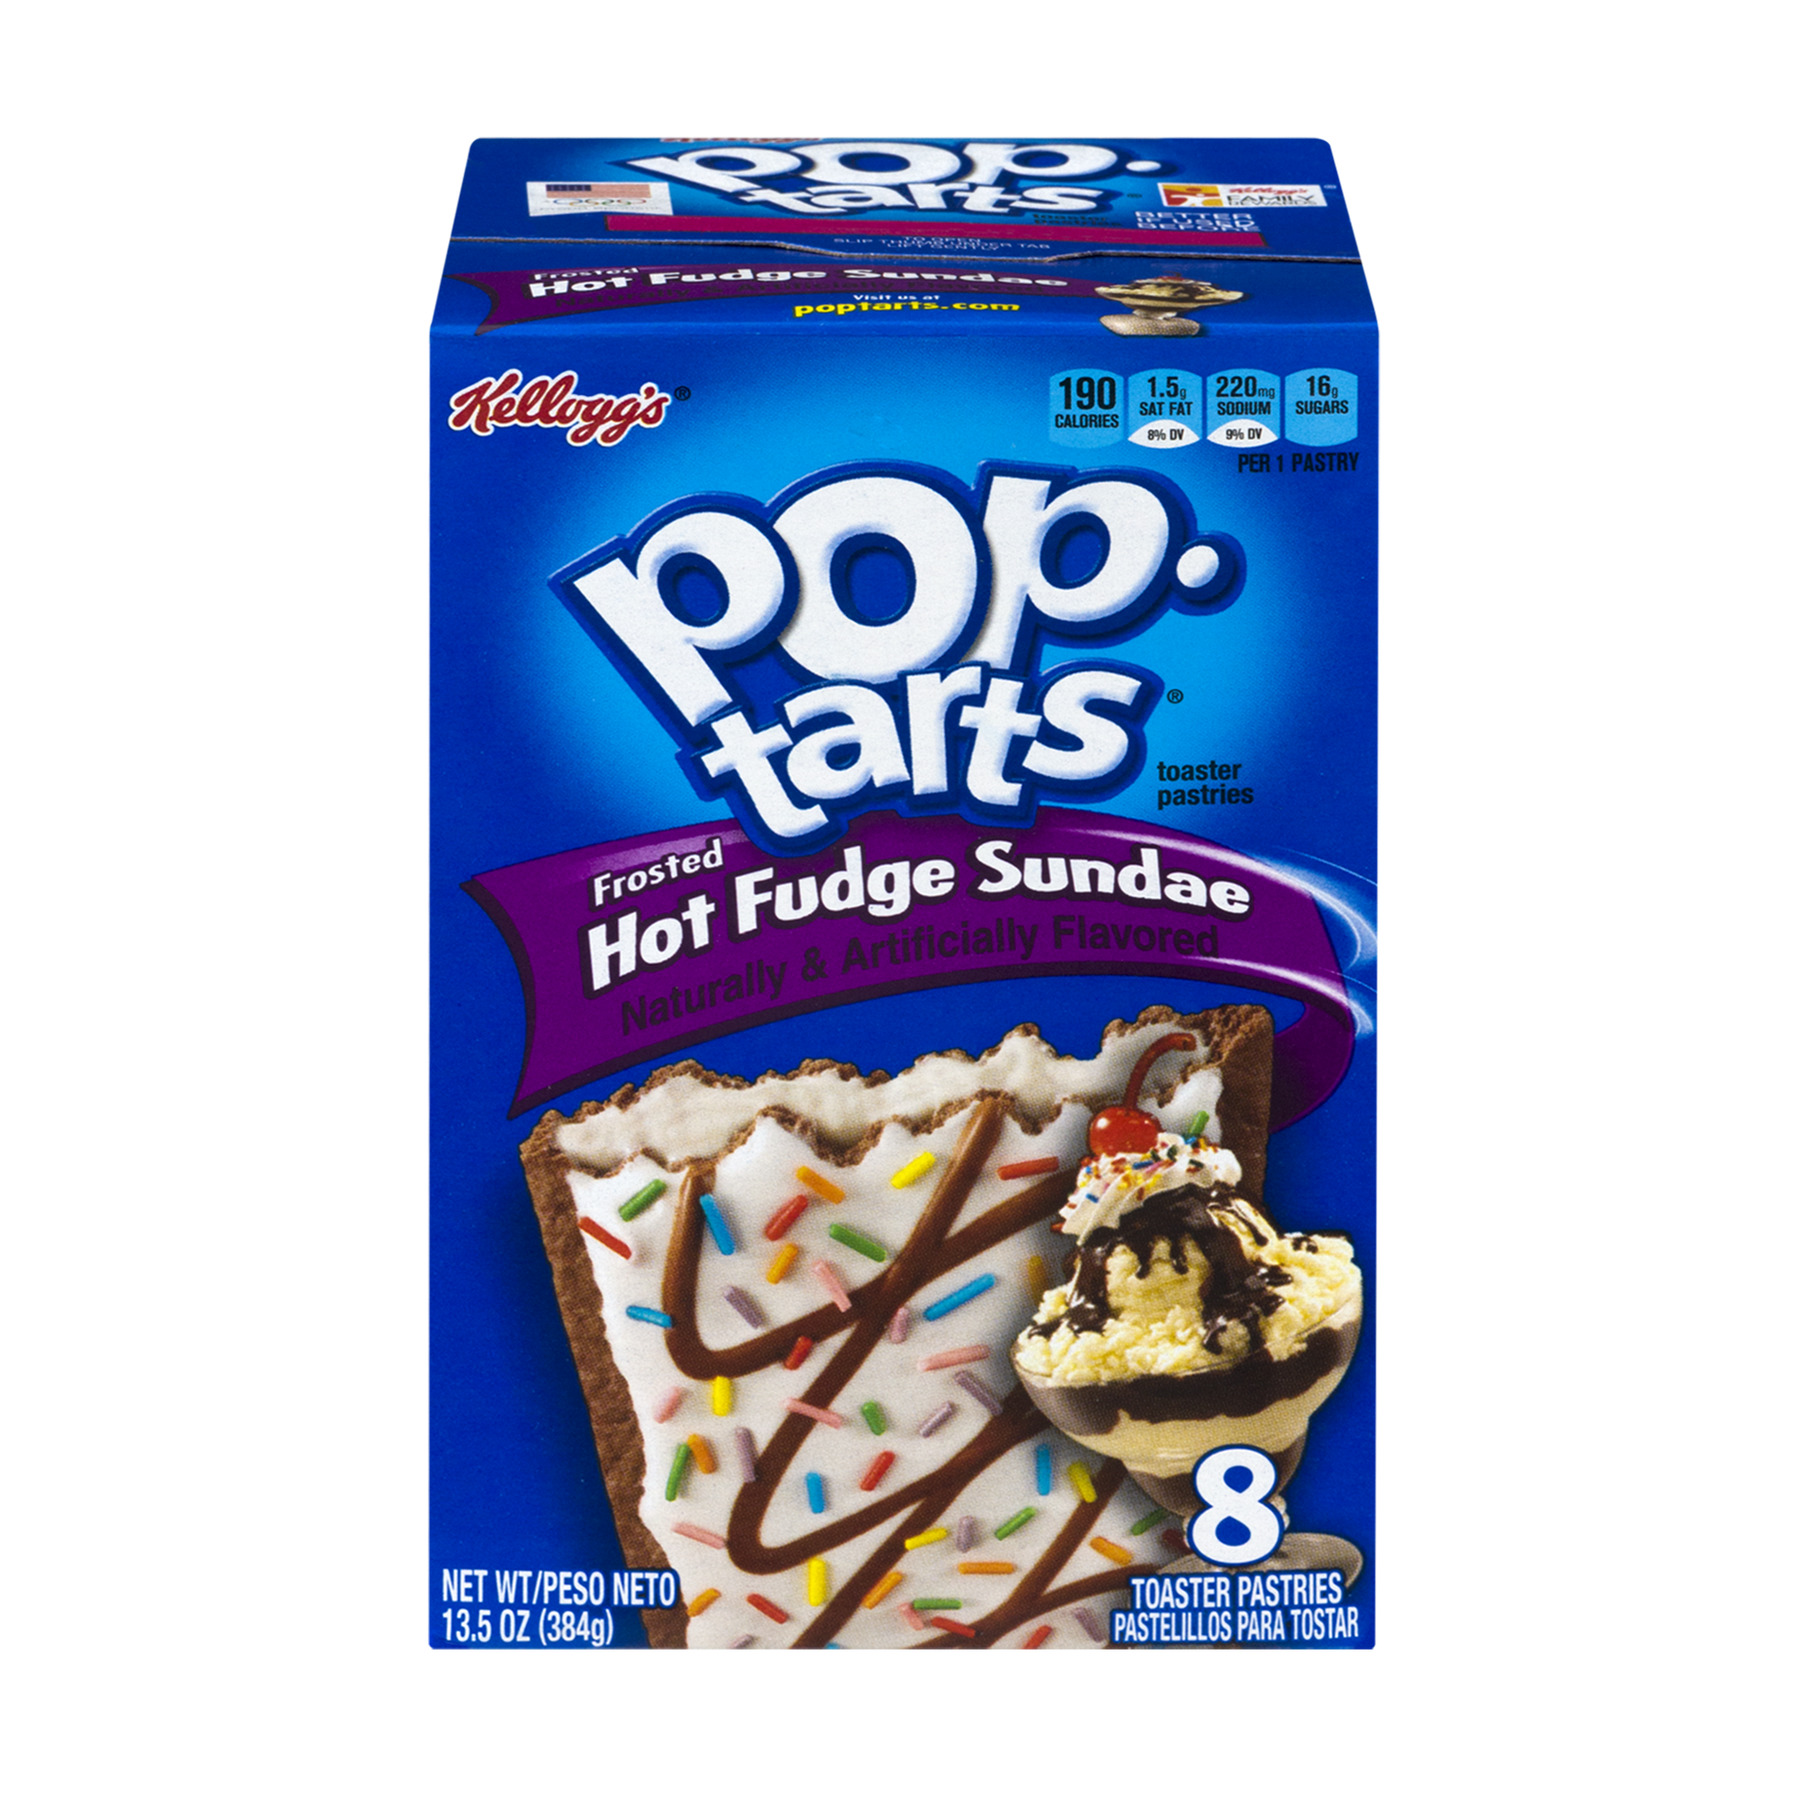 Kellogg's Pop-Tarts Frosted Hot Fudge Sundae, 8 count, 13.5 oz